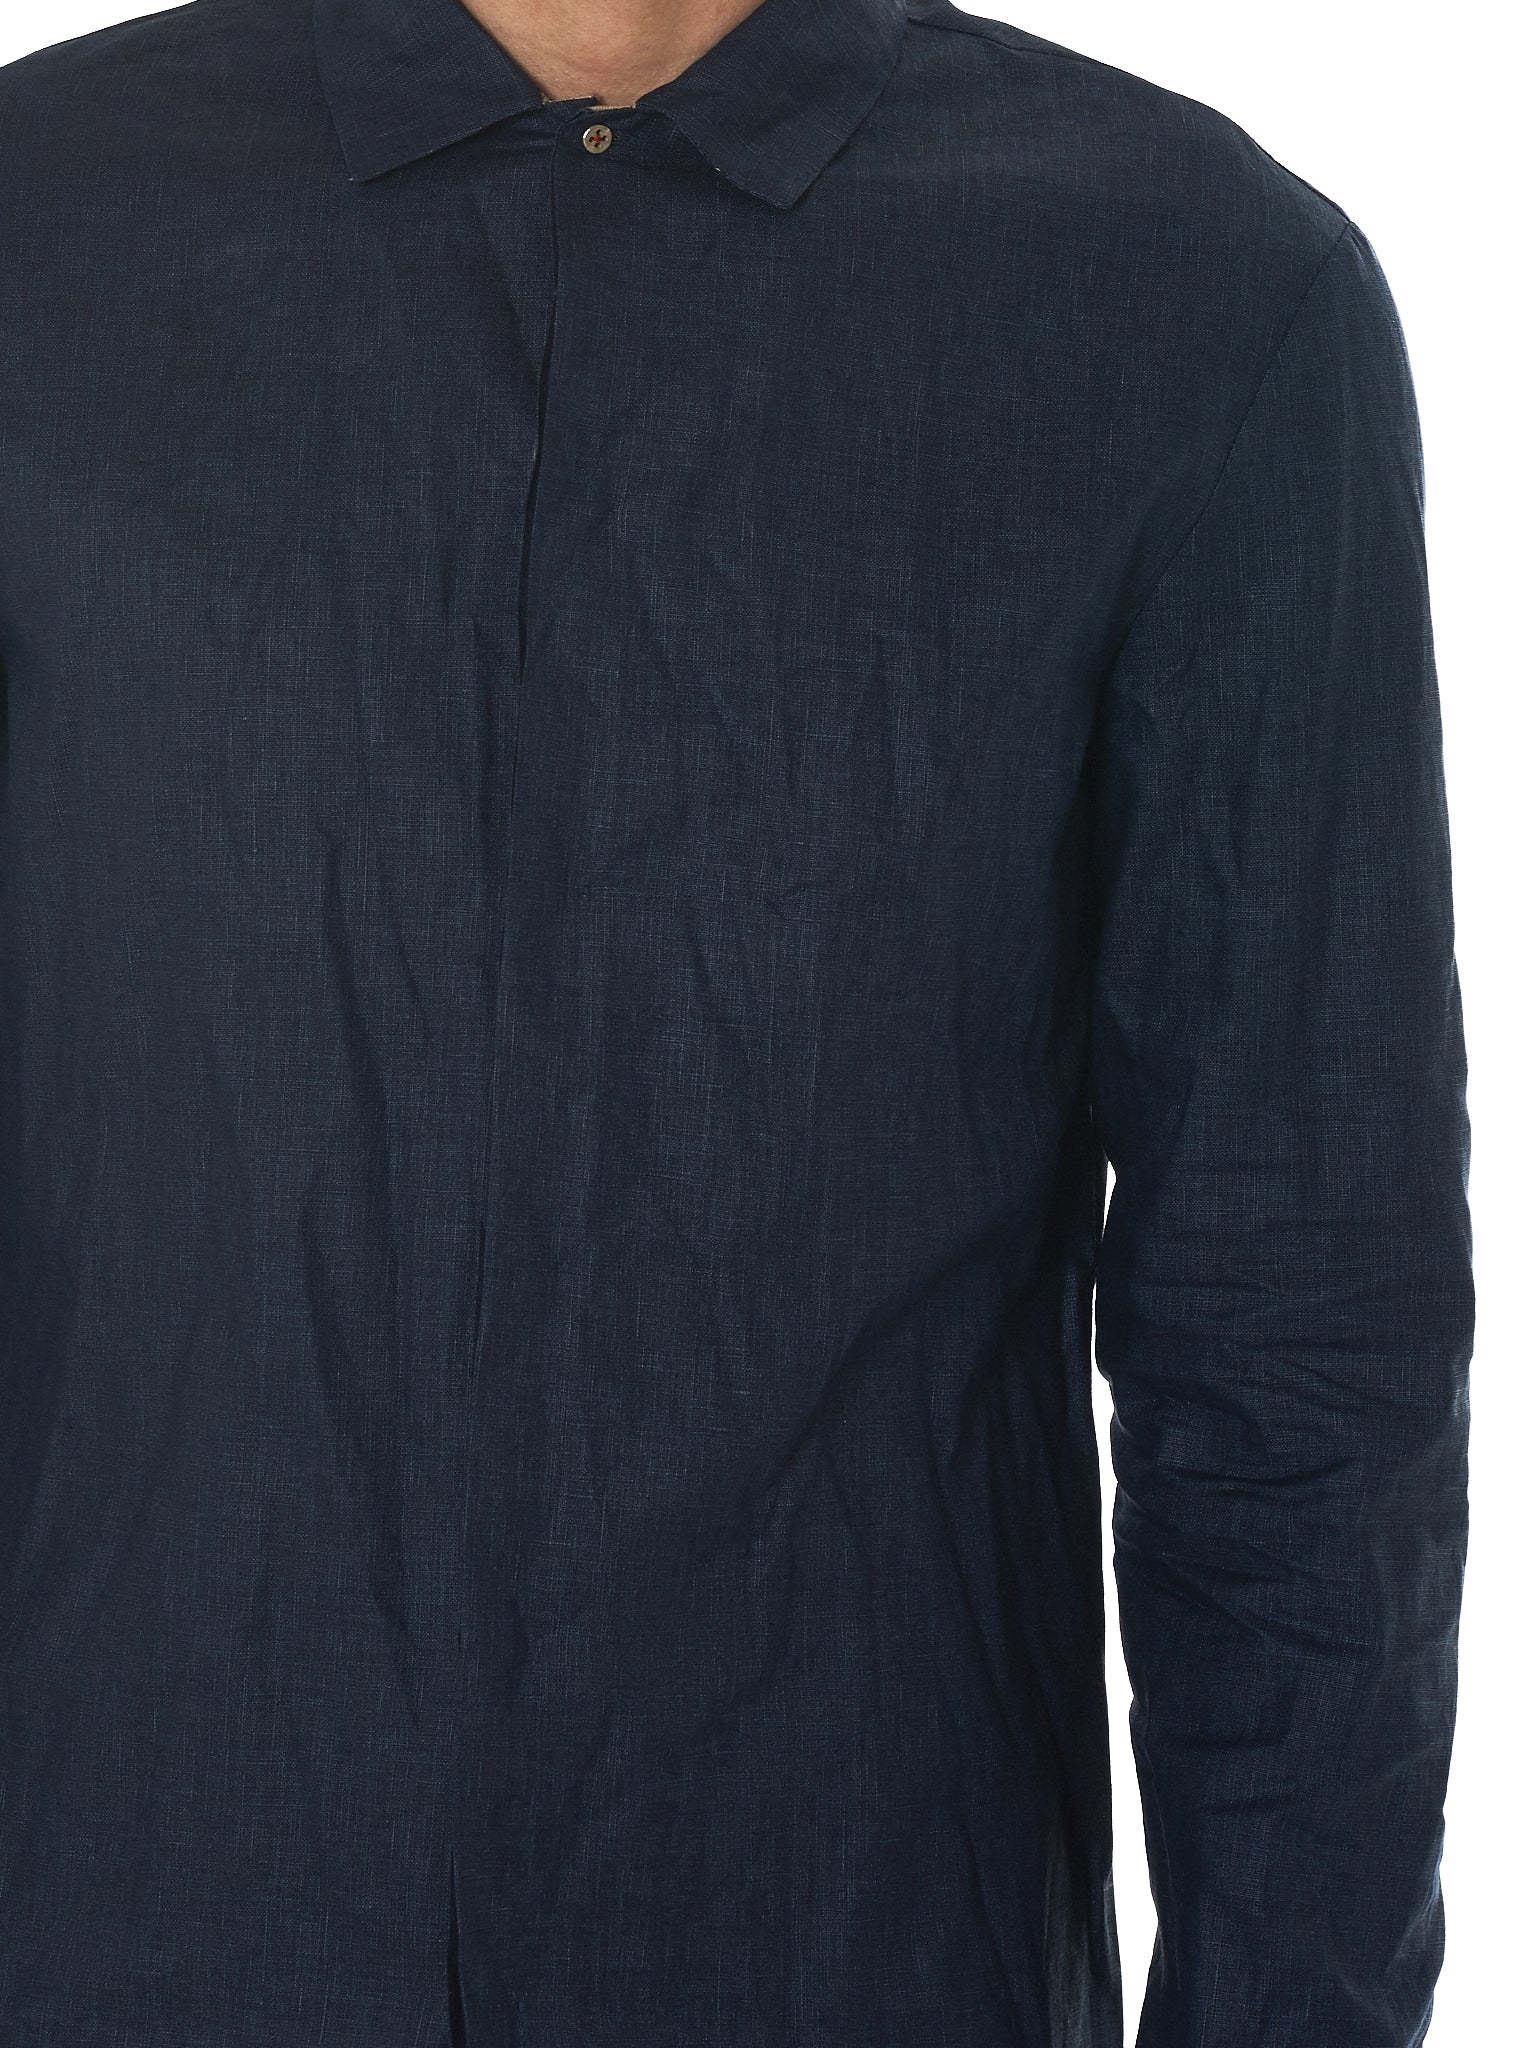 MA+ Crushed Shirt - Hlorenzo Detail 1